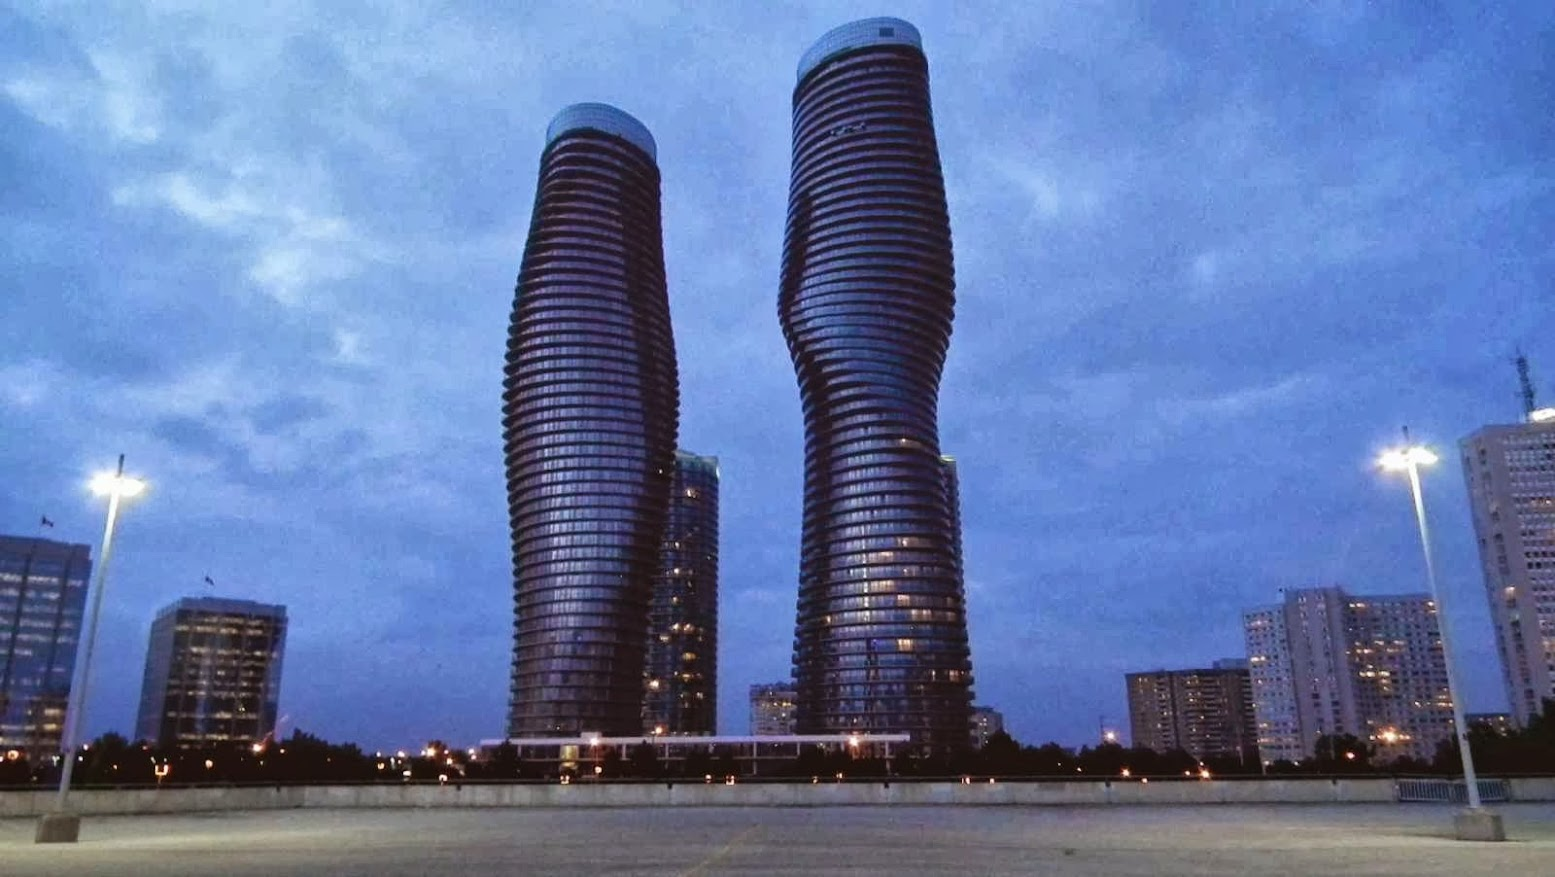 Norimberga, Germania: [ABSOLUTE WORLD TOWERS WINS EMPORIS SKYSCRAPER AWARD 2012]